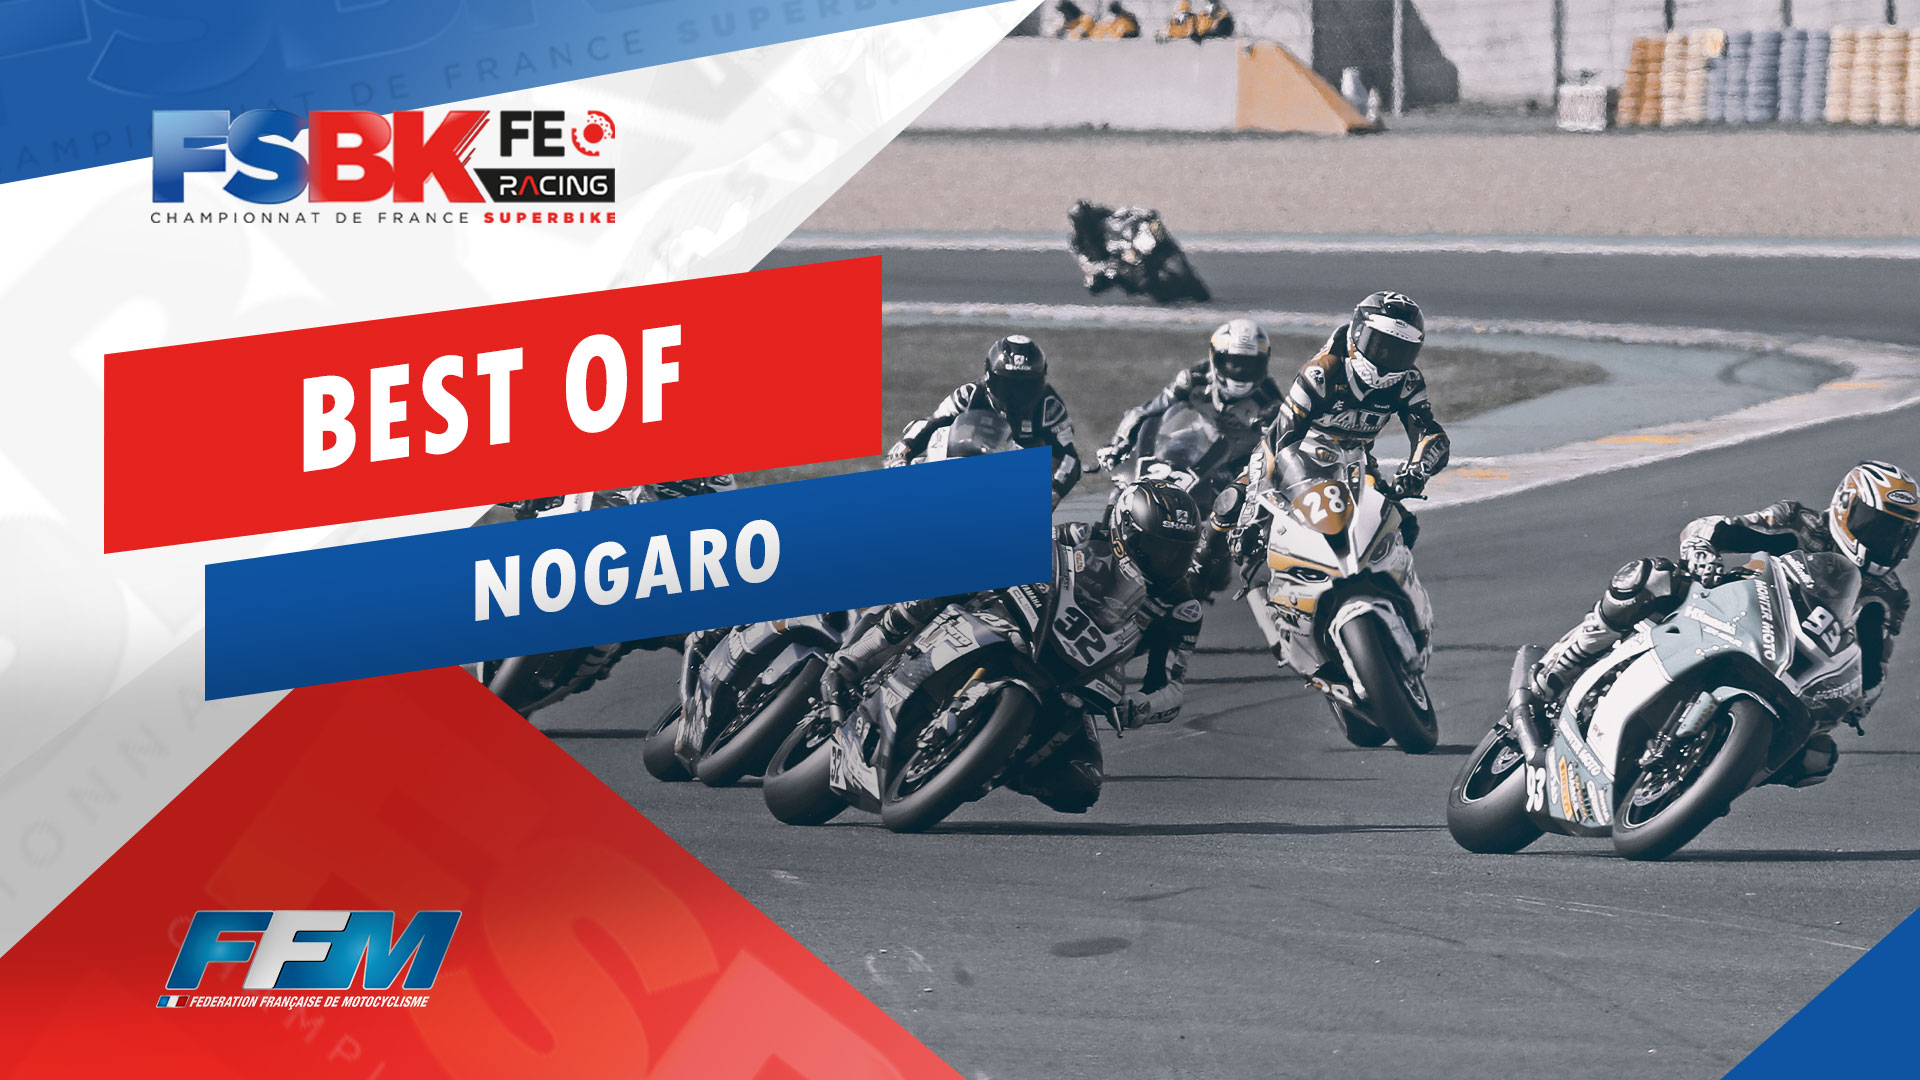 // BEST OF NOGARO //